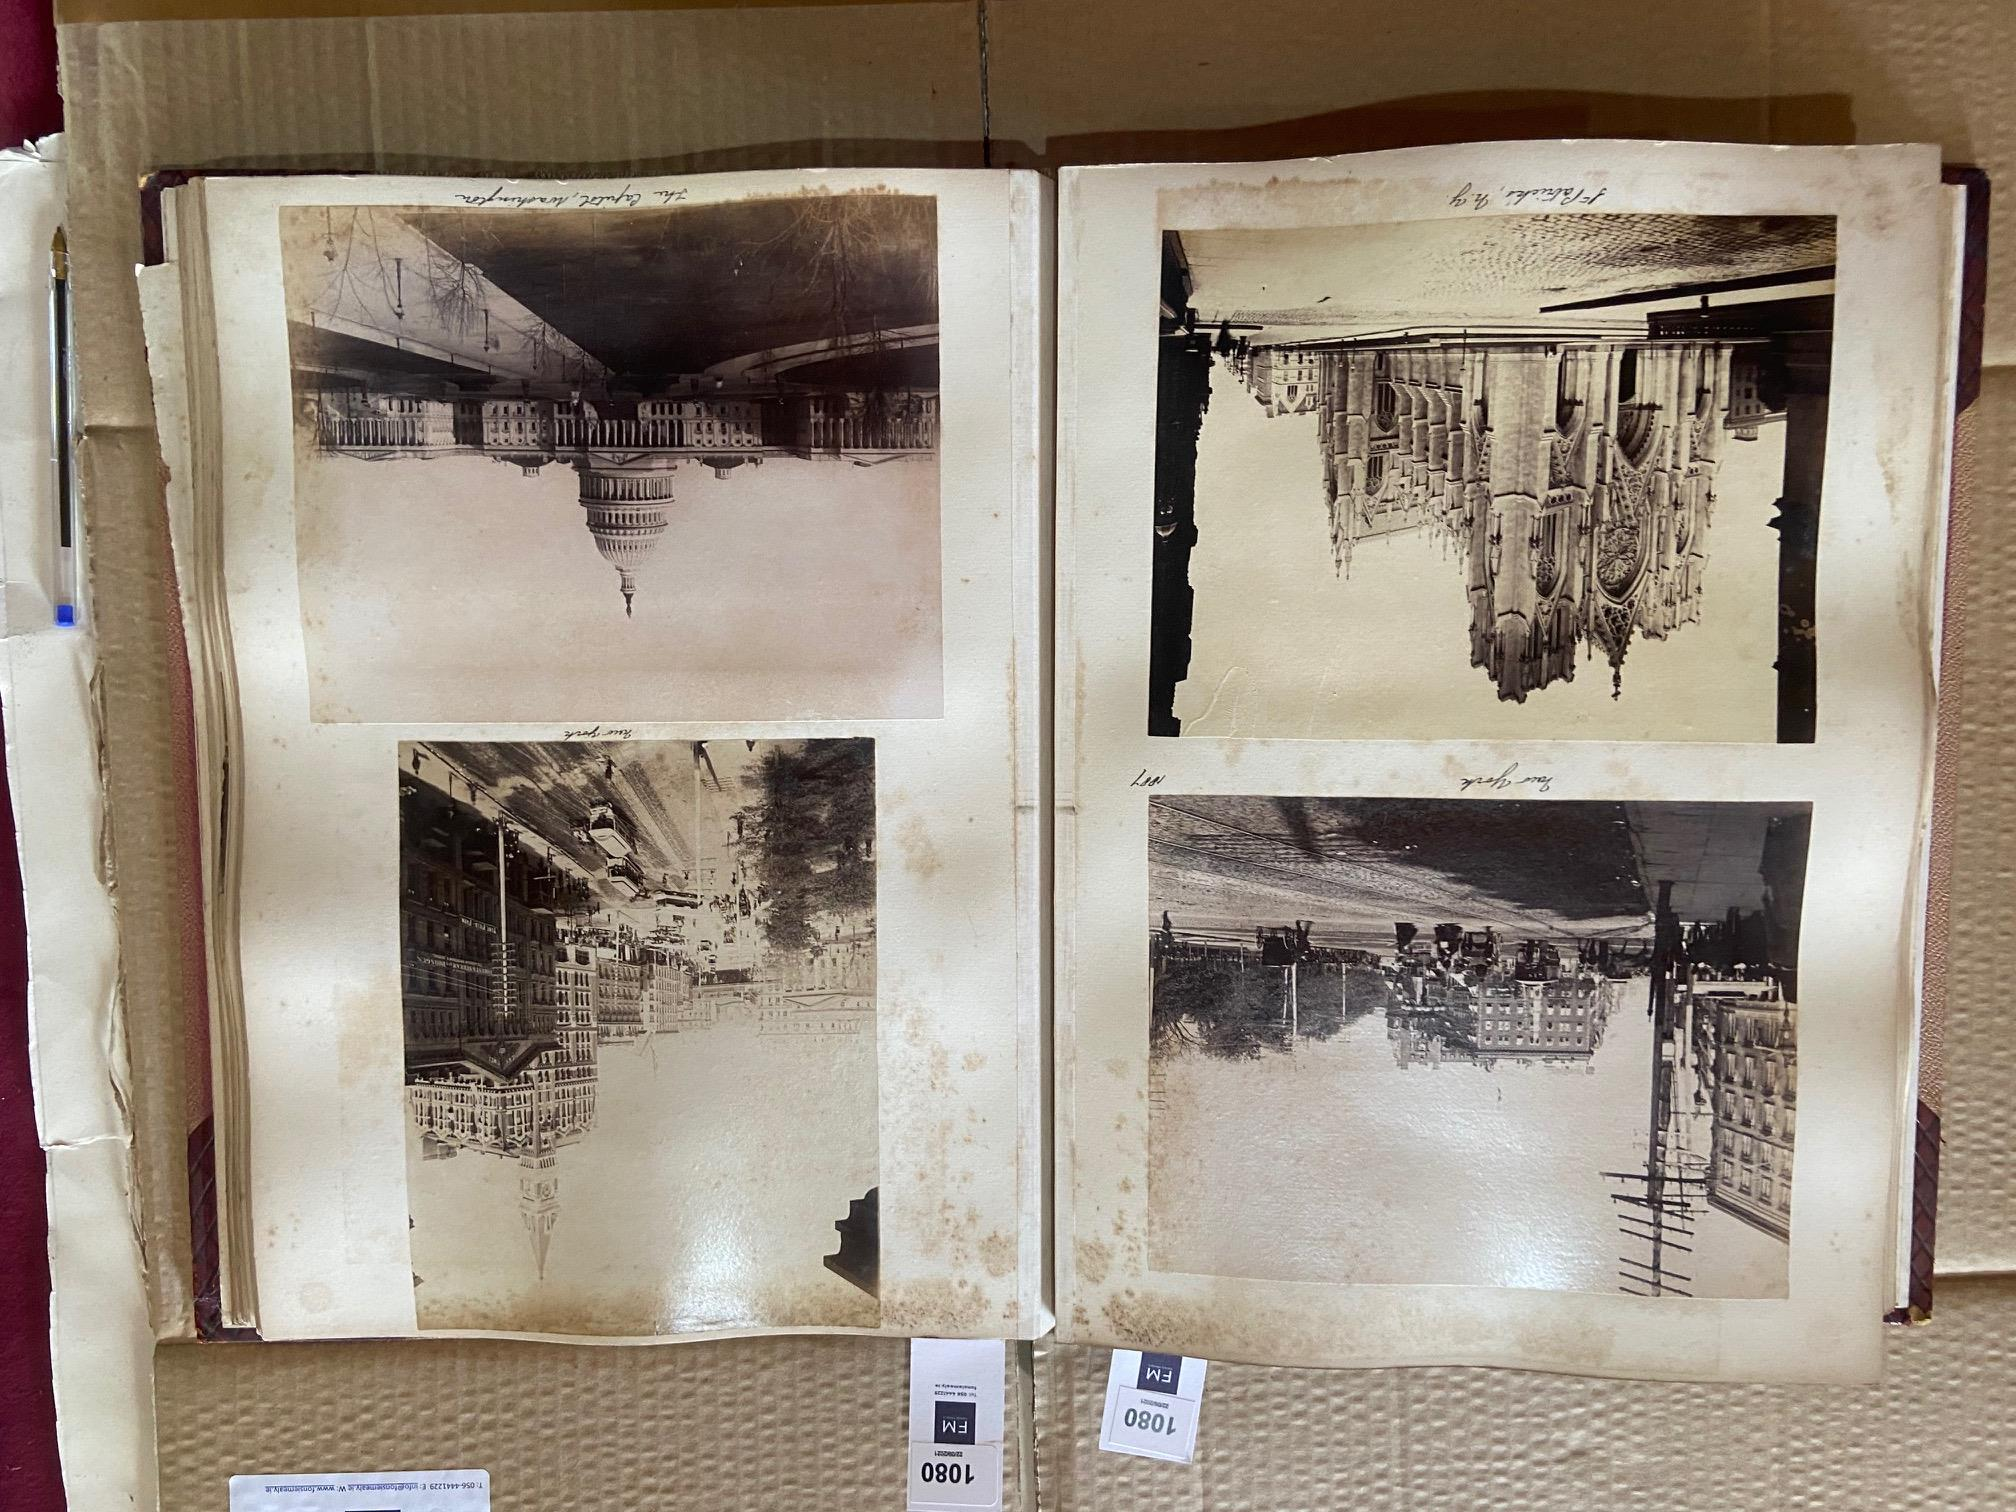 Photographs: Two large folio Albums of Photographs, each c. 1870 - 1890's. One Album contains - Image 5 of 31